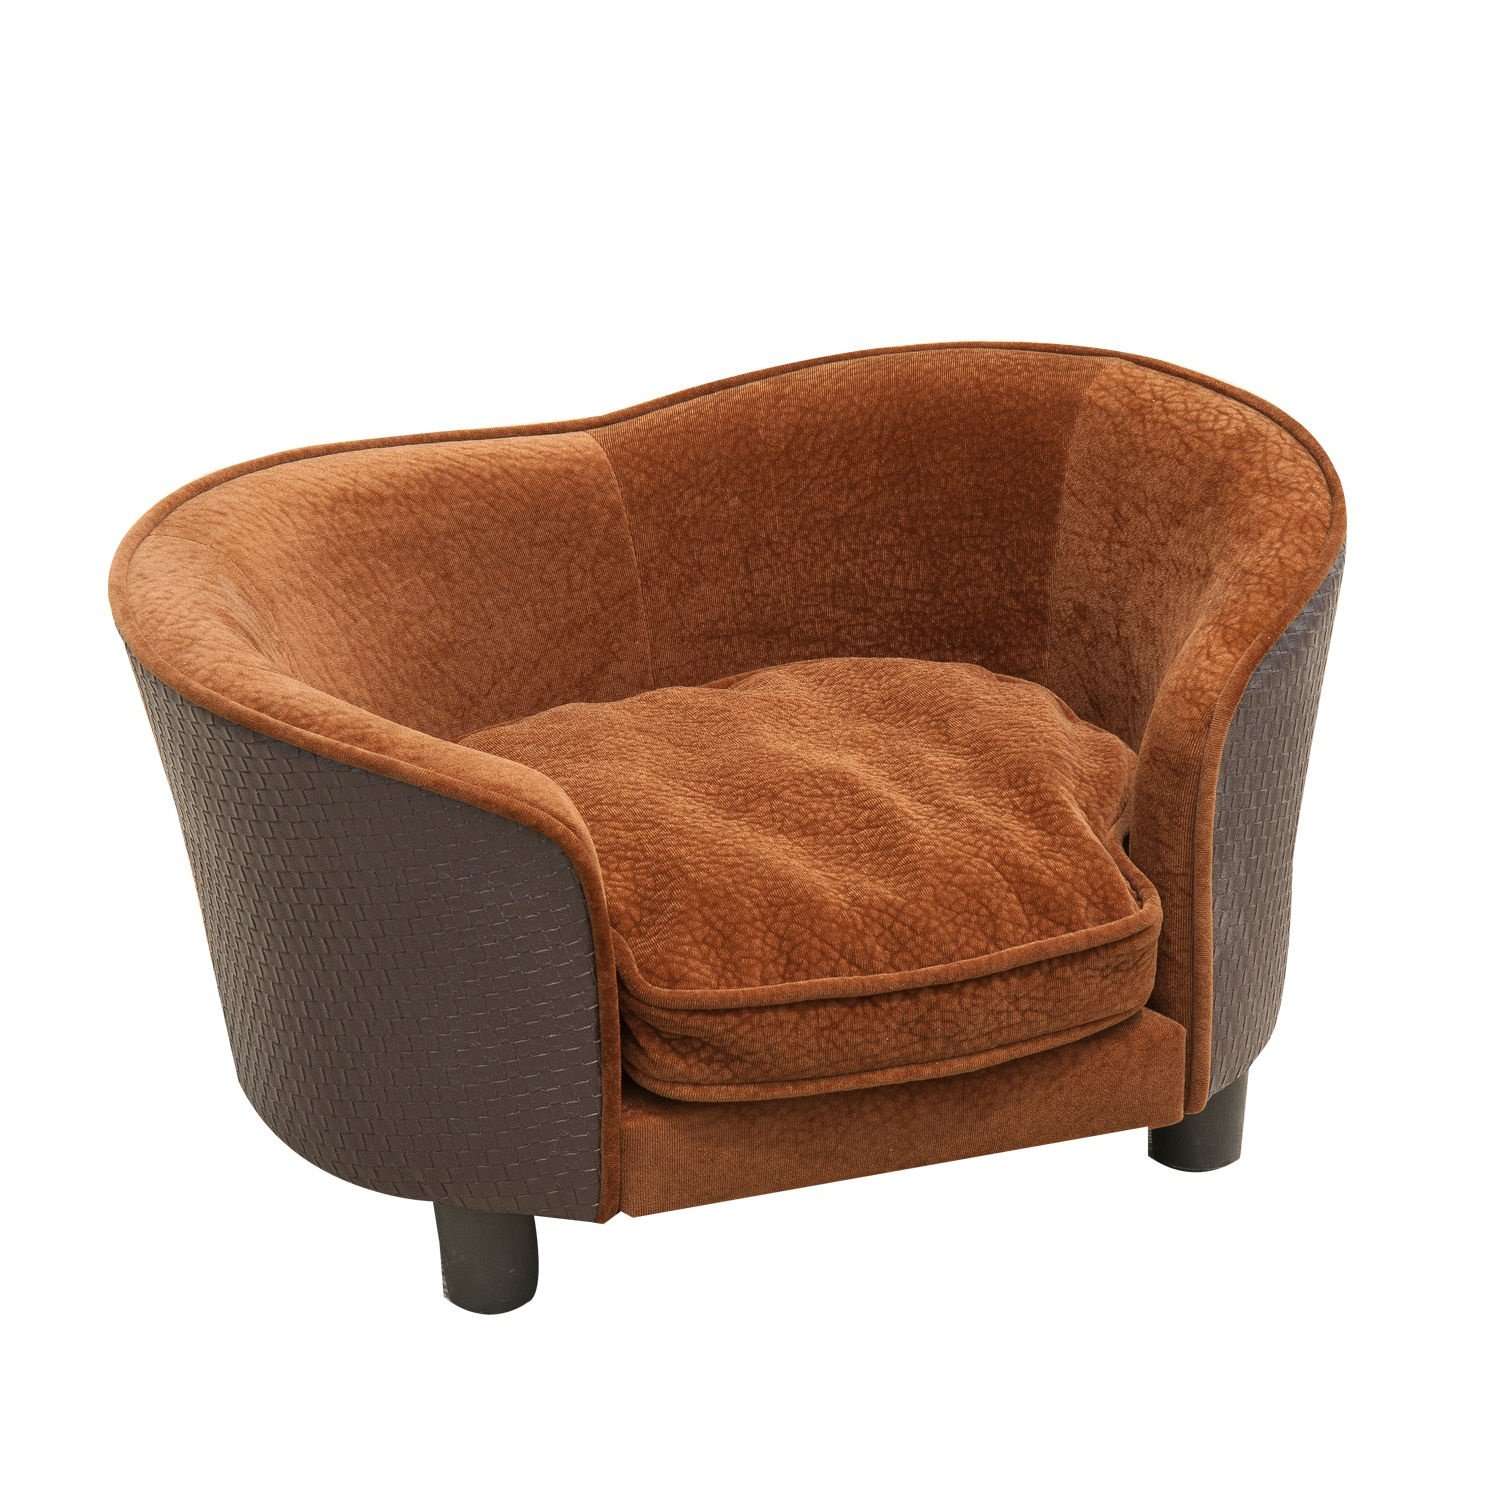 Brown Rattan Embossed Design Plush Pets Lounge Sofa Bed Eco Friendly w  Washable Cushion